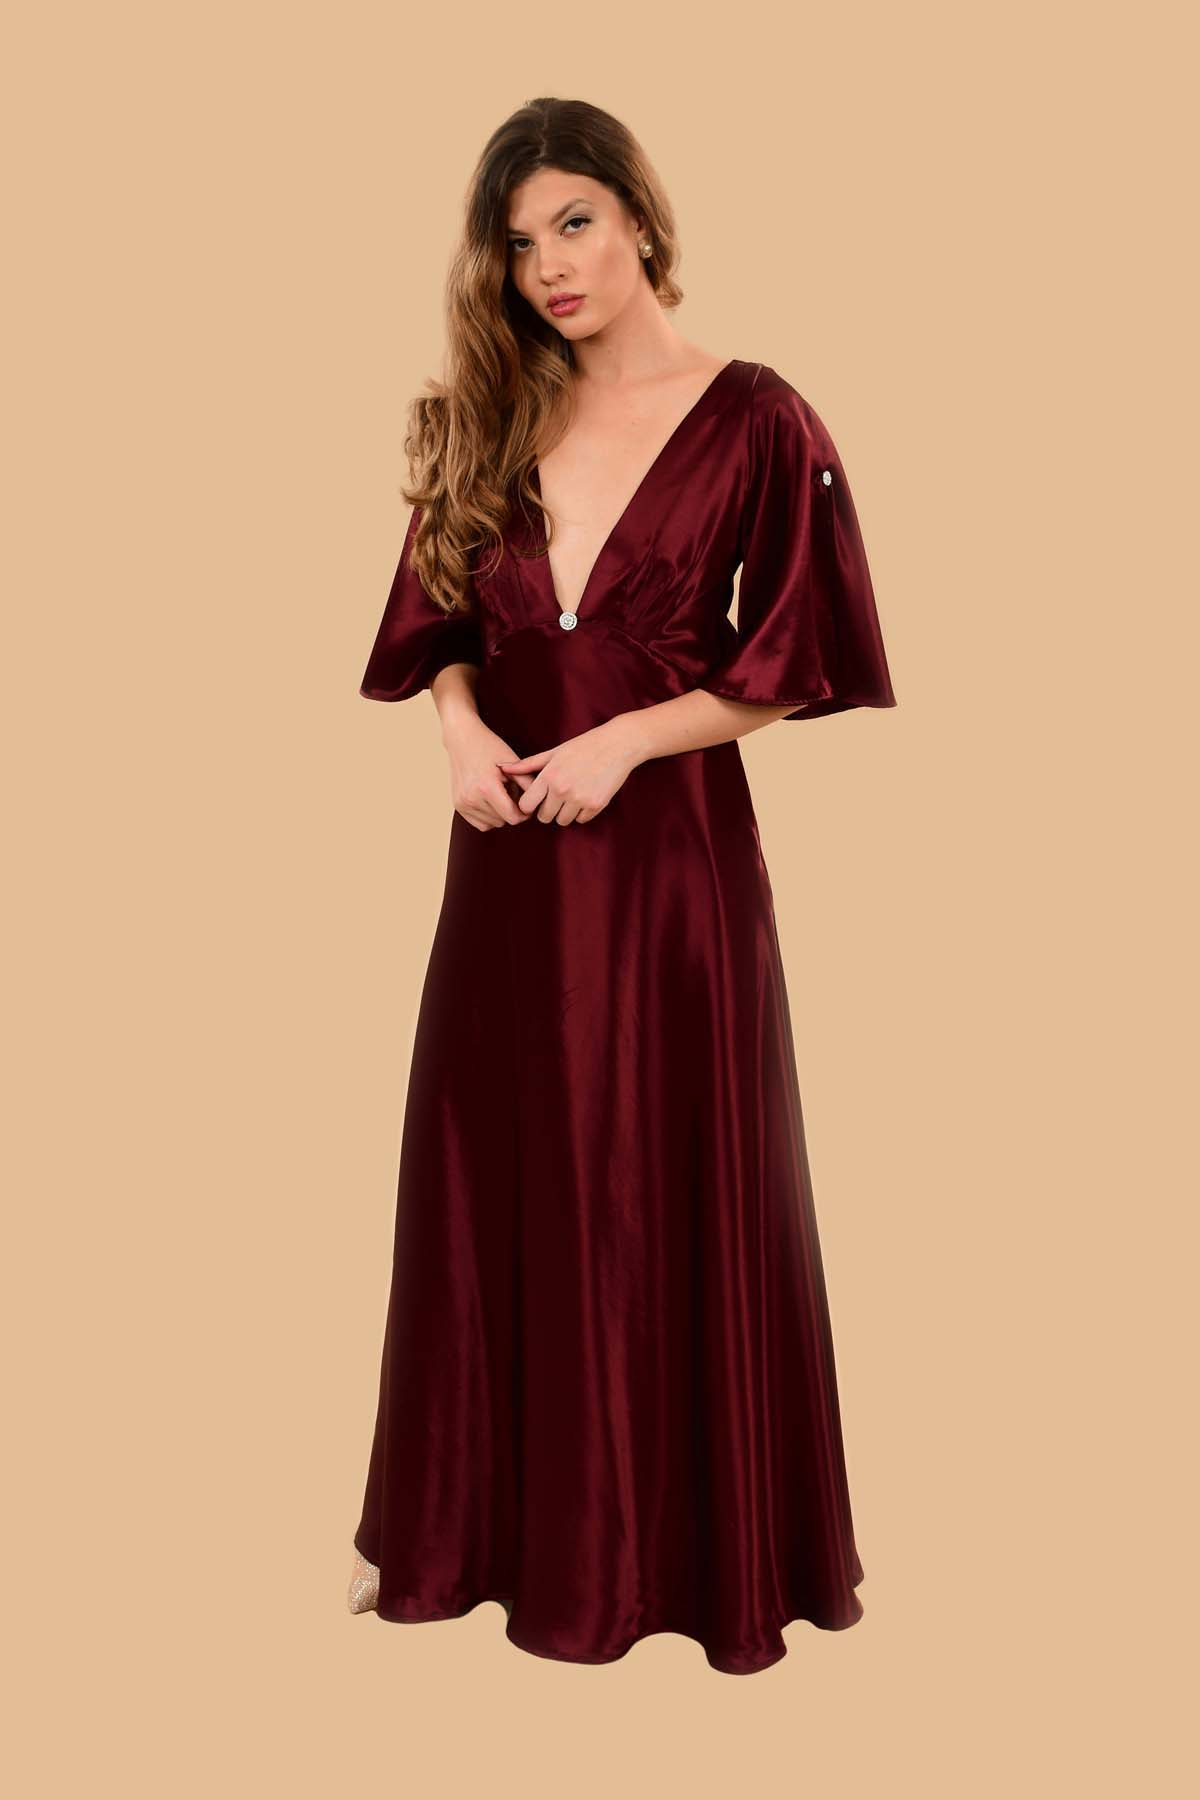 Autograph Beautiful Rich Red Wine  Velvet Embellished Top Appliqu\u00e9 Flowers Embroidery Evening Top Or Over Blouse.